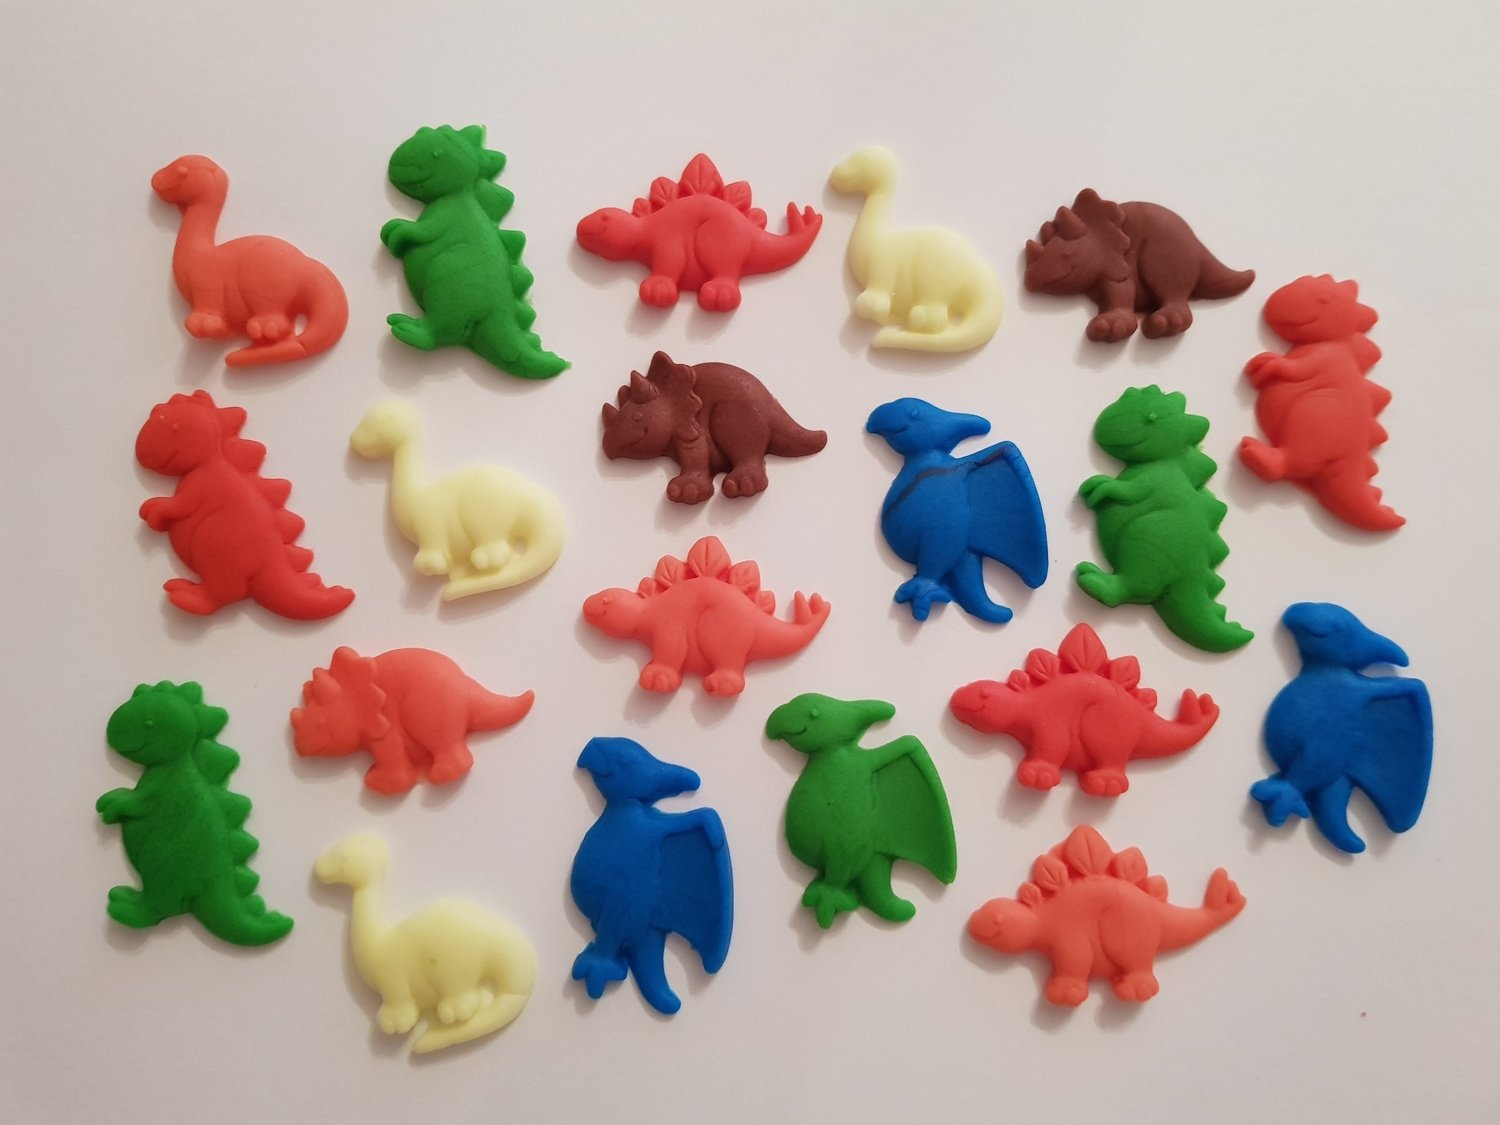 20 DINOSAUR EDIBLE CAKE TOPPERS